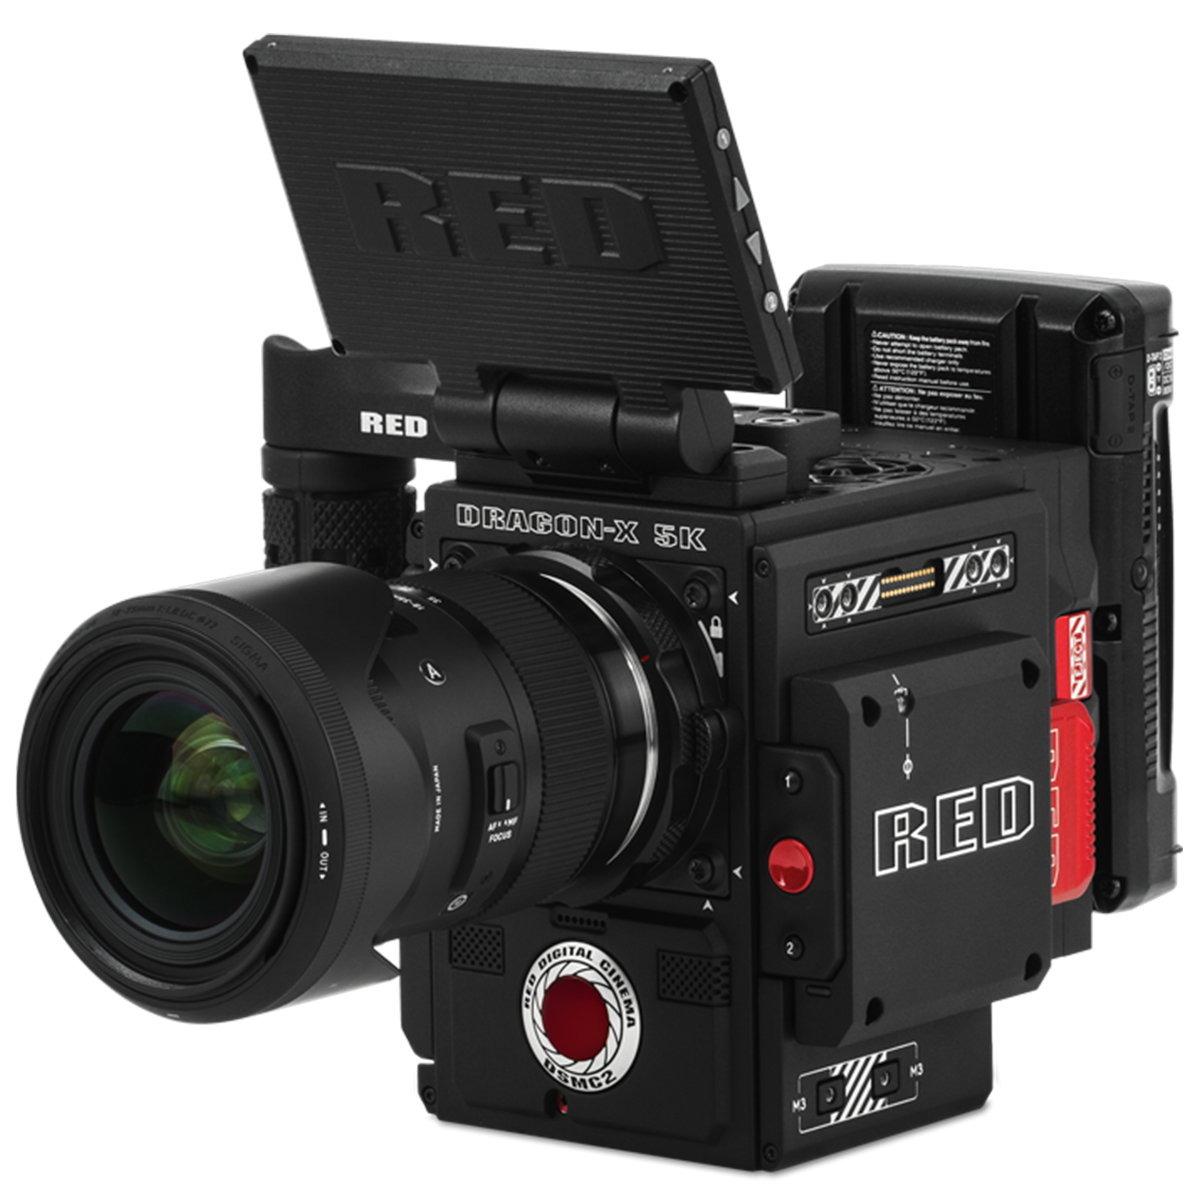 The Most Exciting Camera Rumors of 2019 — RED